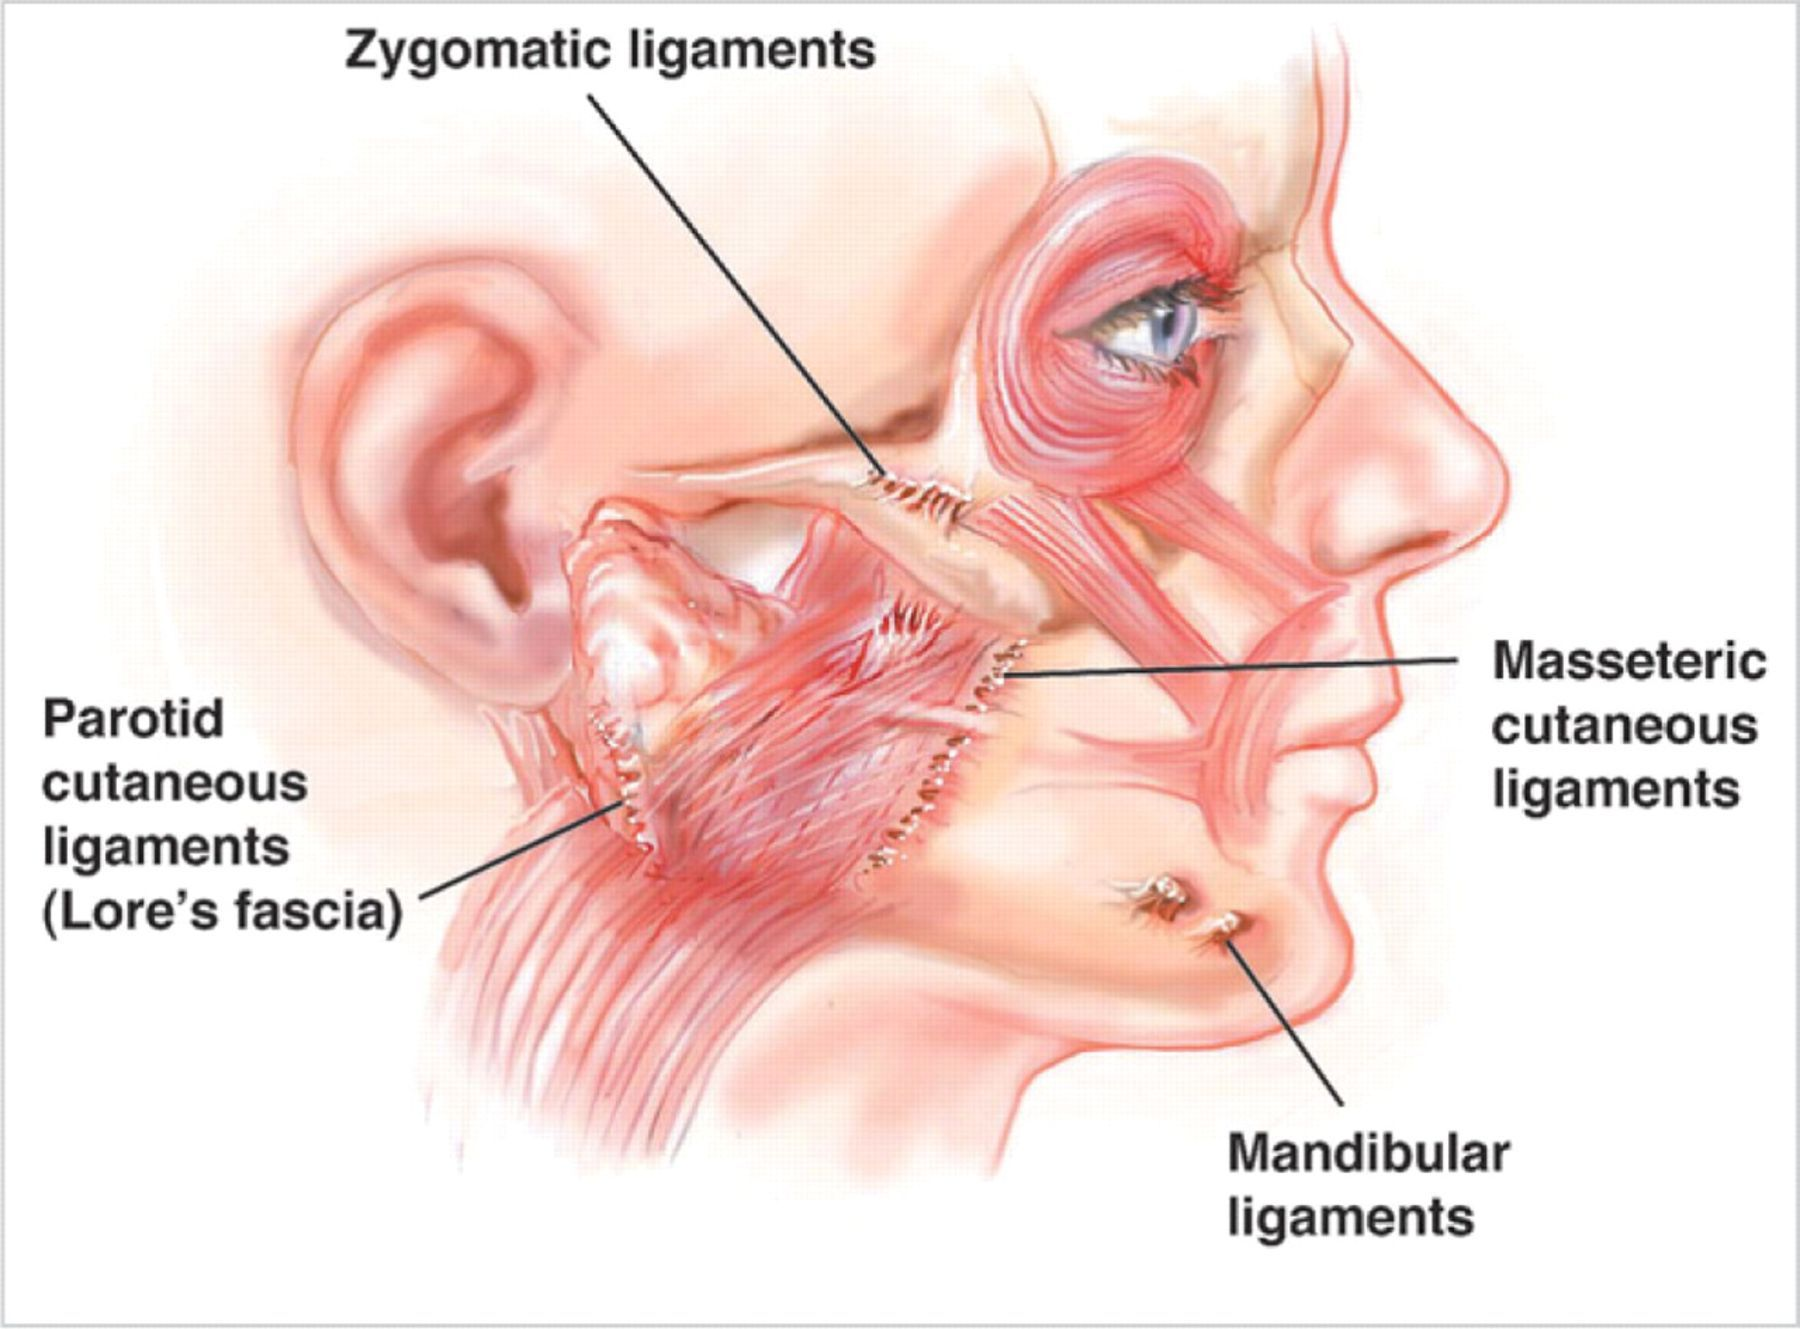 zygomatic ligament - Google Search | medical | Pinterest